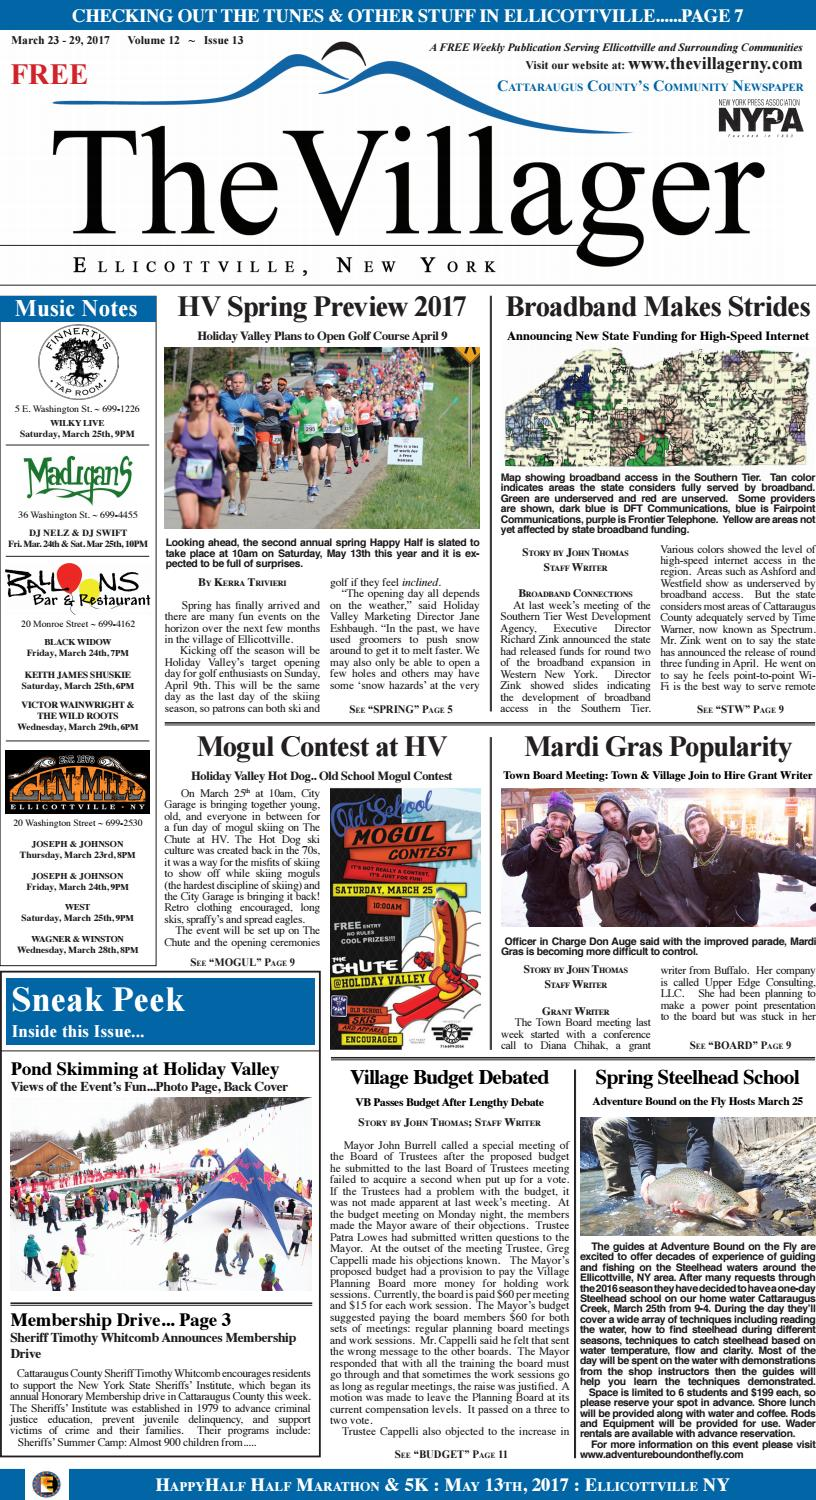 The villager ellicottville march 23 29, 2017 volume 12 issue 13 by ...